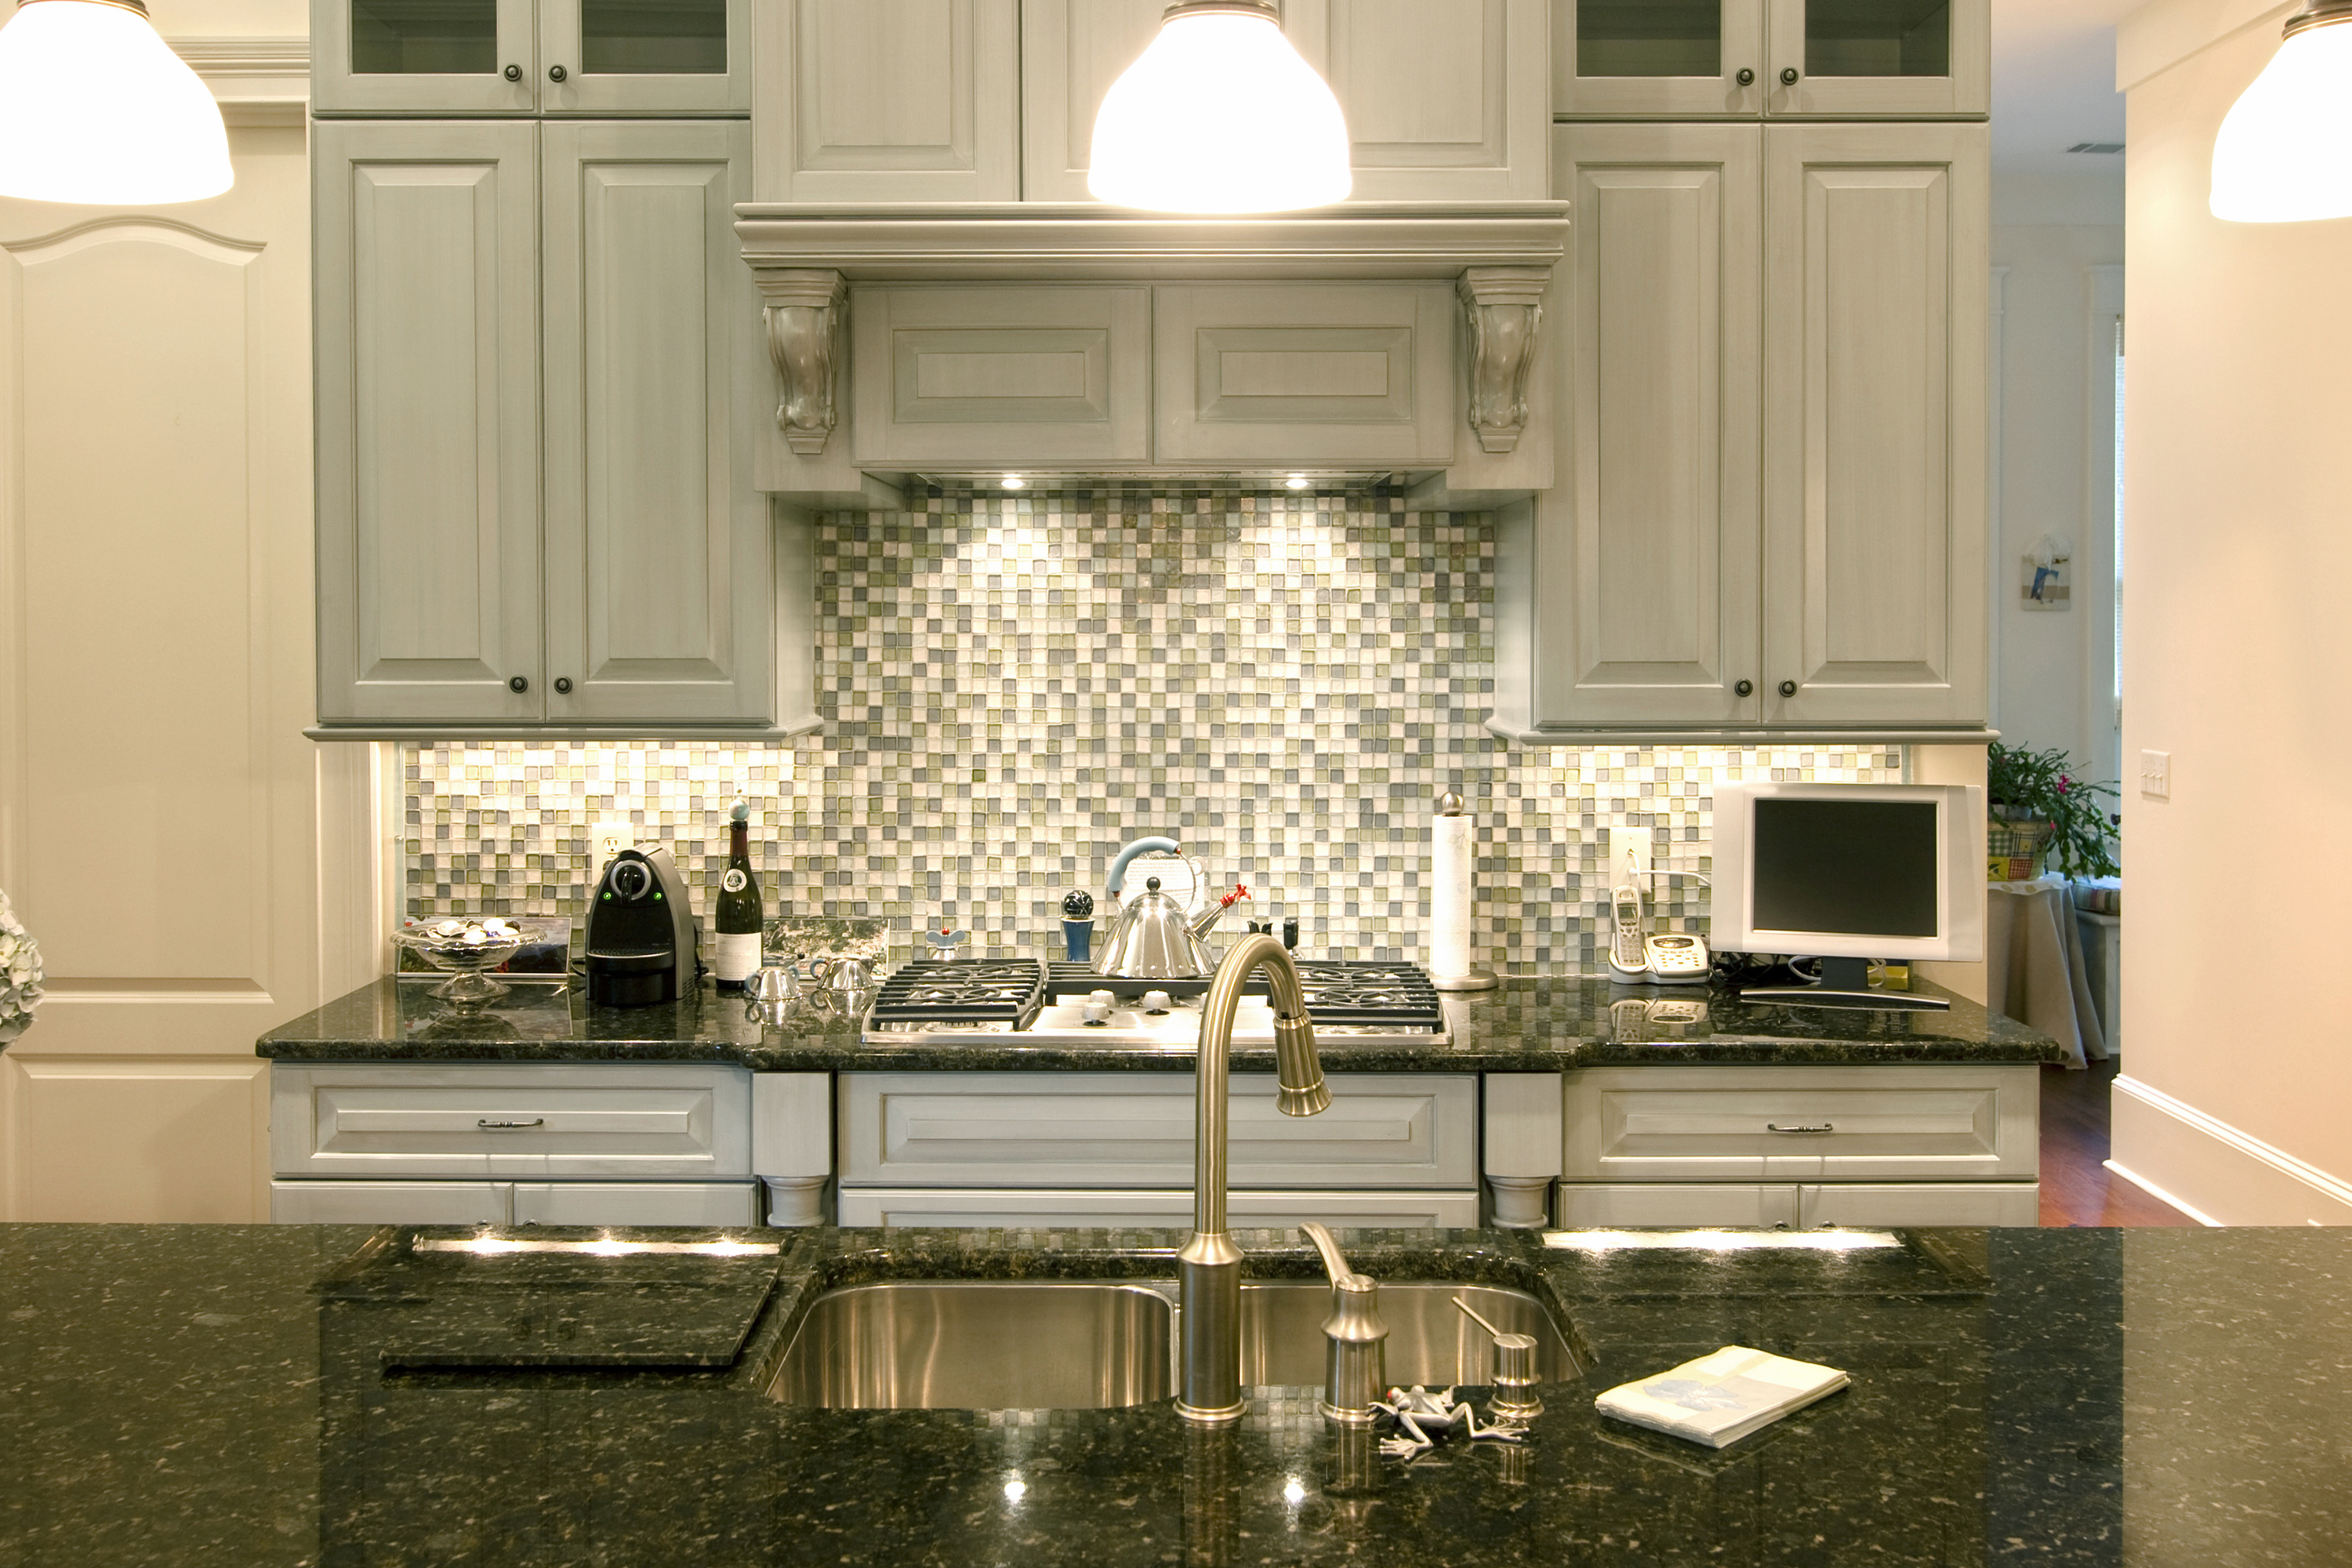 New Kitchen Tile Backsplash Design Ideas ~ The best backsplash ideas for black granite countertops